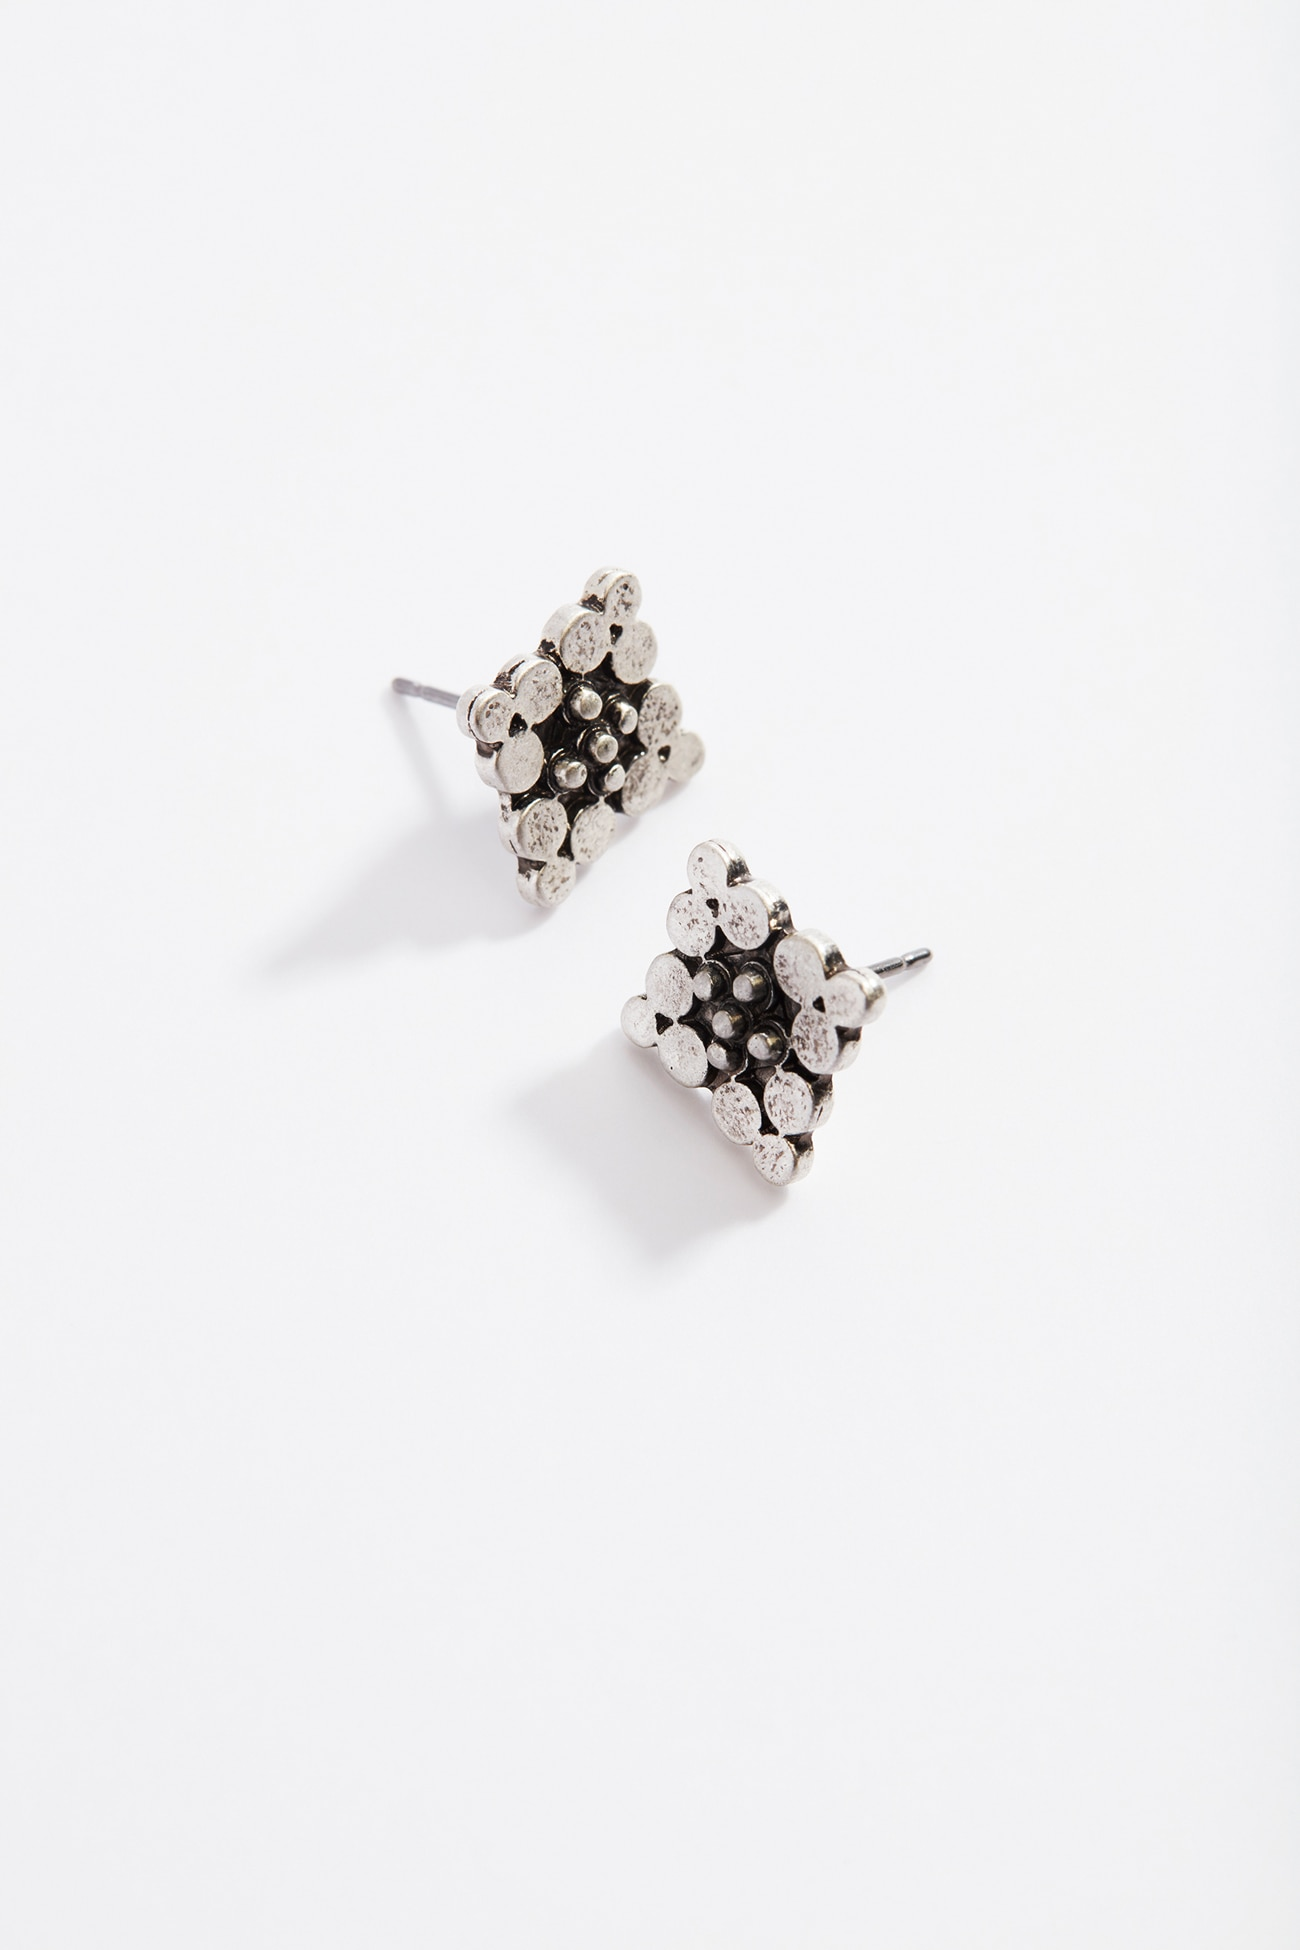 antiqued-metal stud earrings